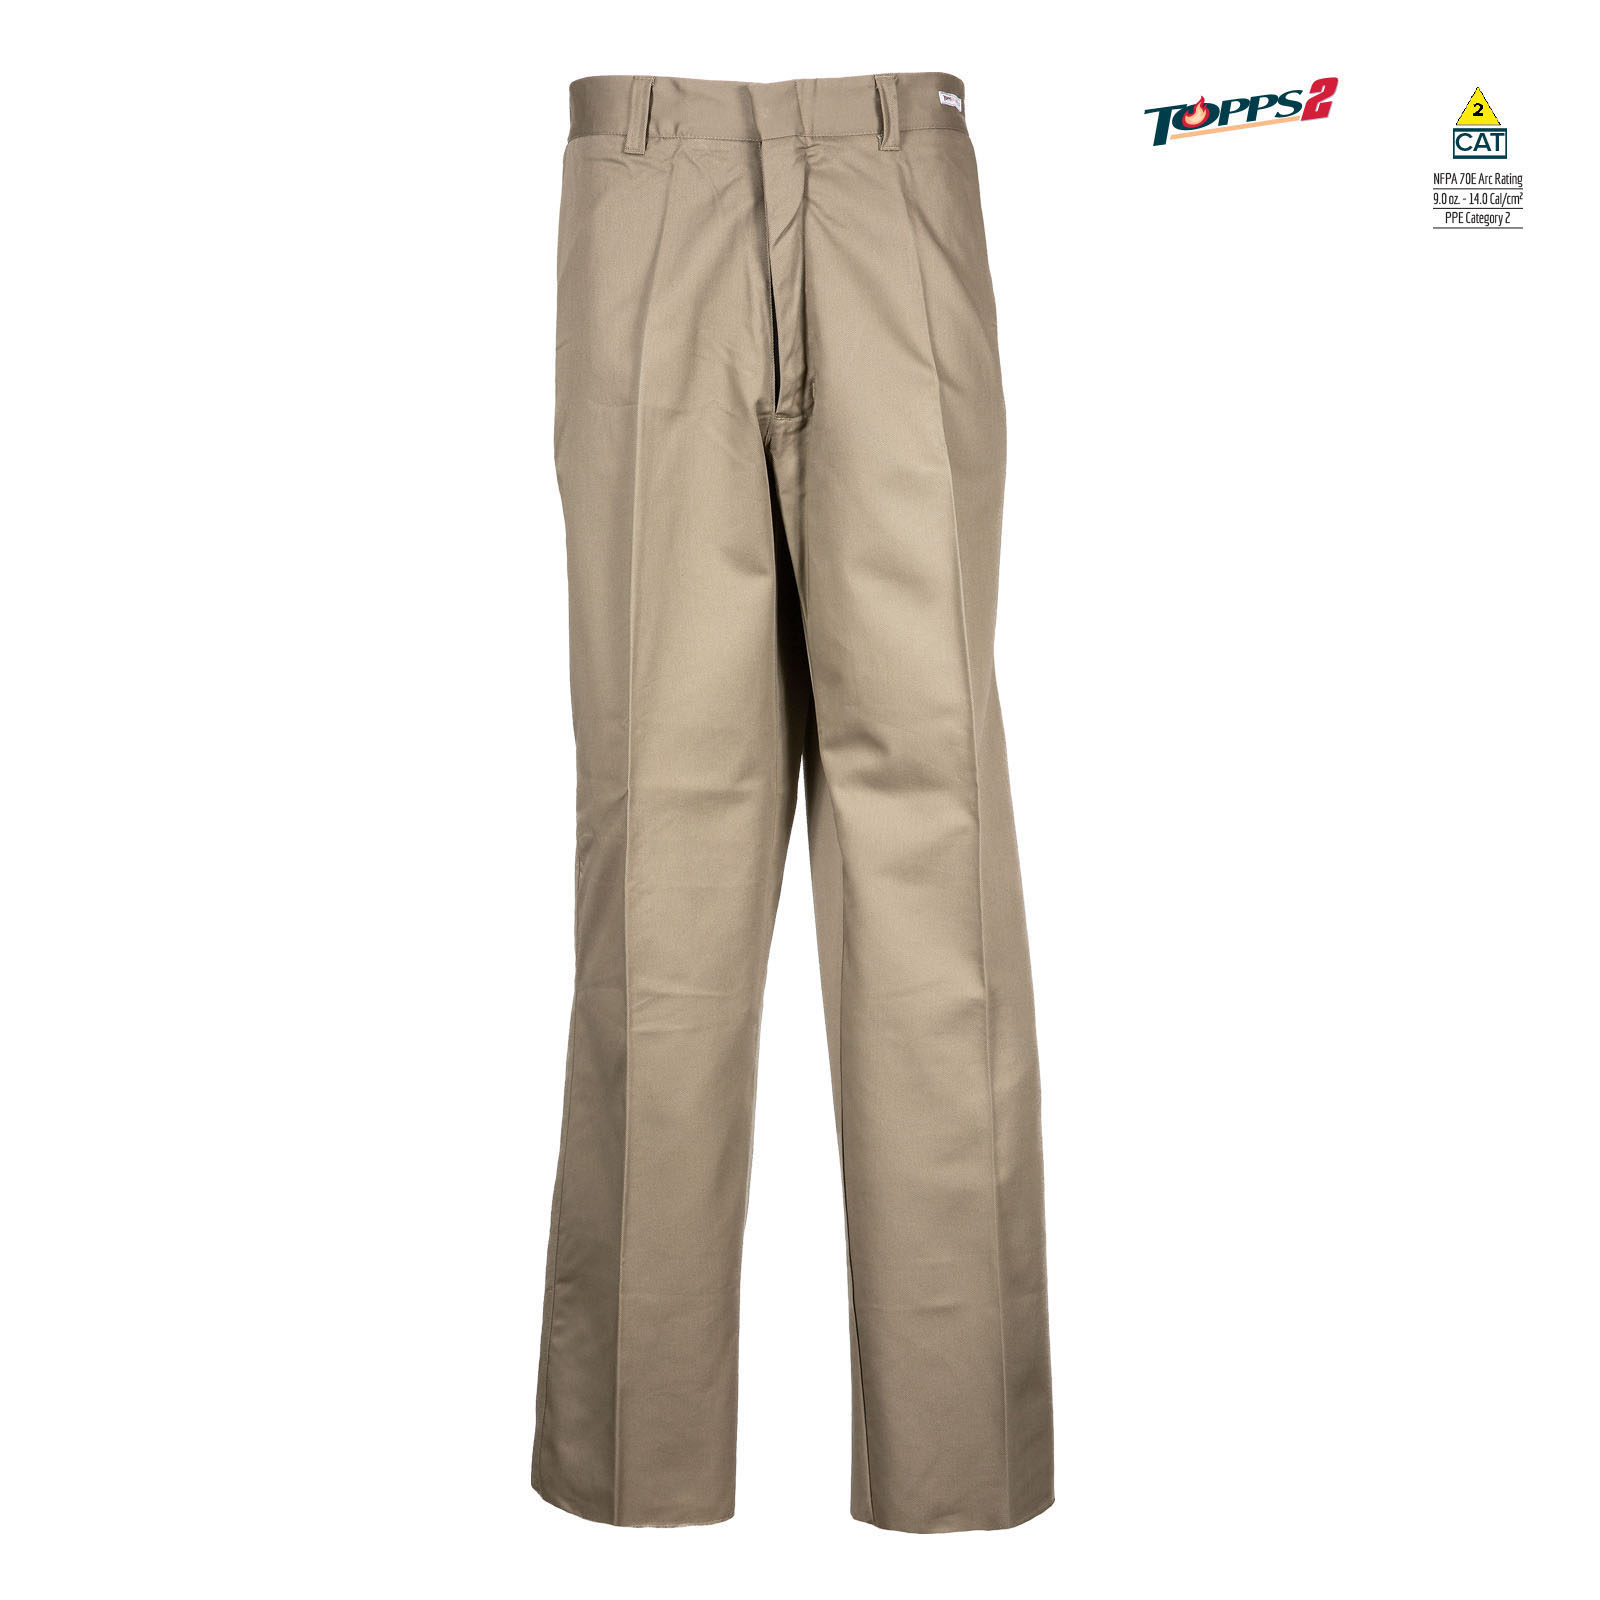 88/12 Cotton/Nylon Blend Flame Resistant Standard Uniform Pant-